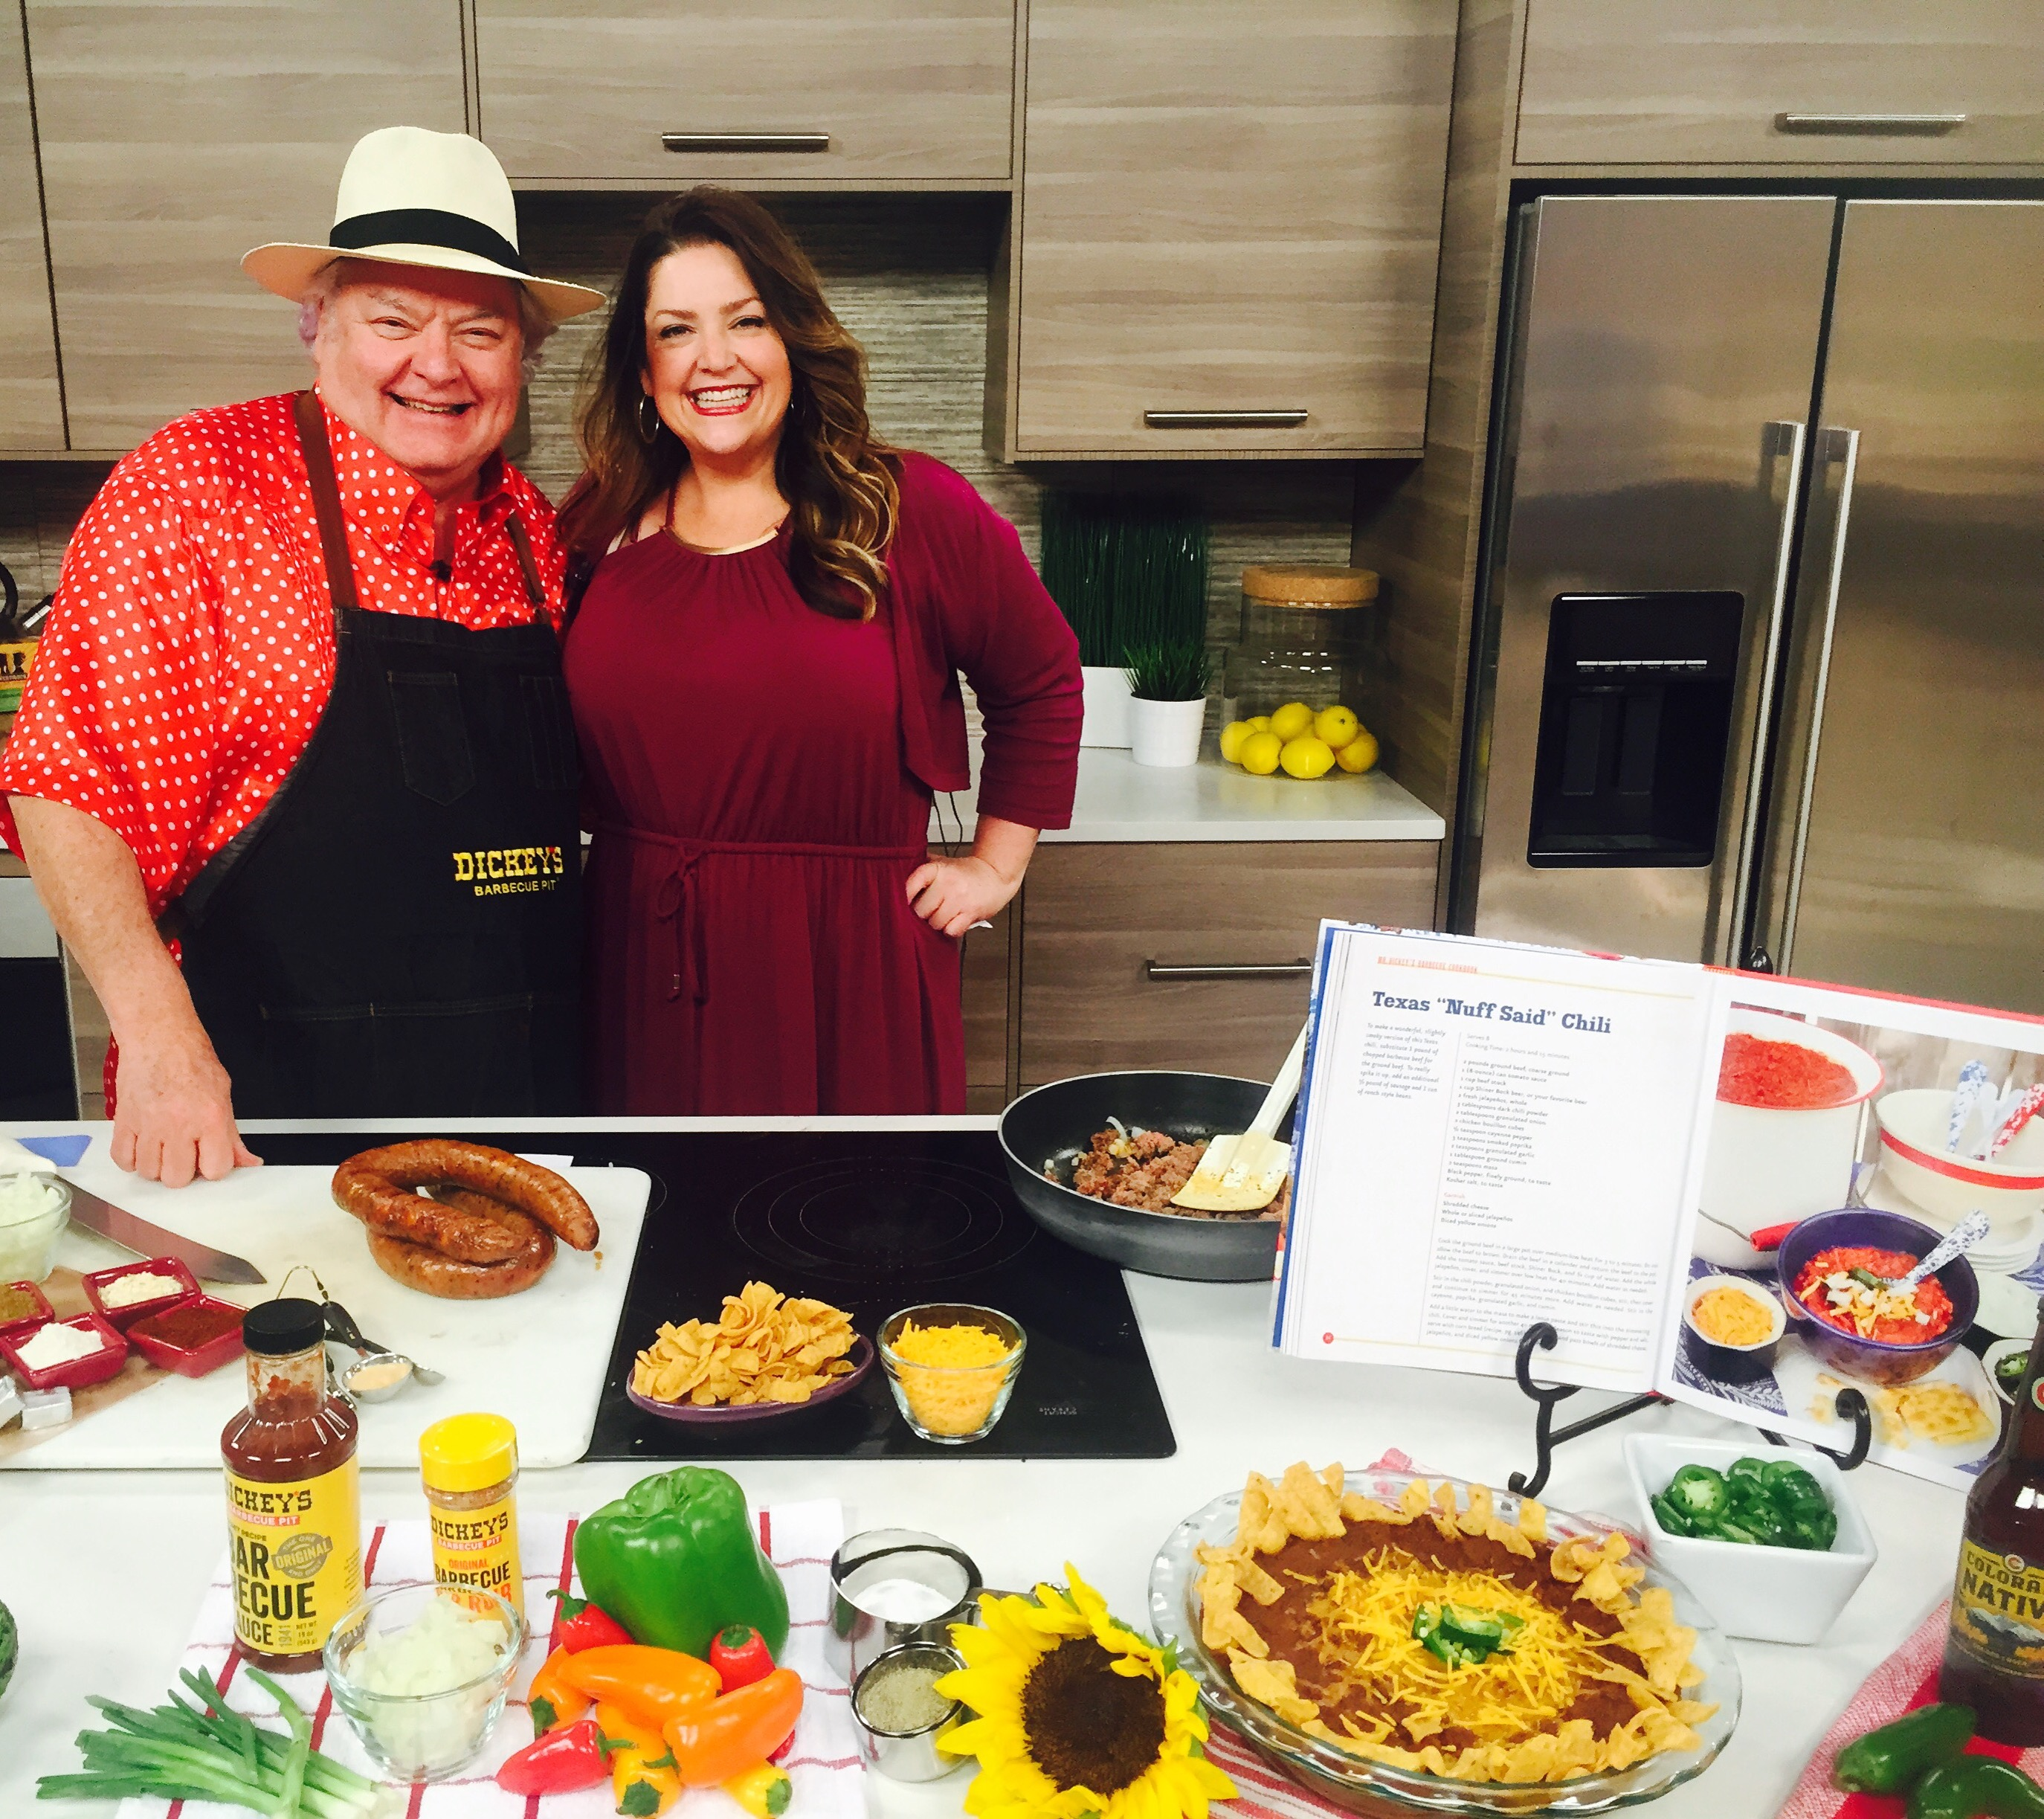 FOX31 Everyday: Dickey's Barbecue Pit 75th Anniversary & More!